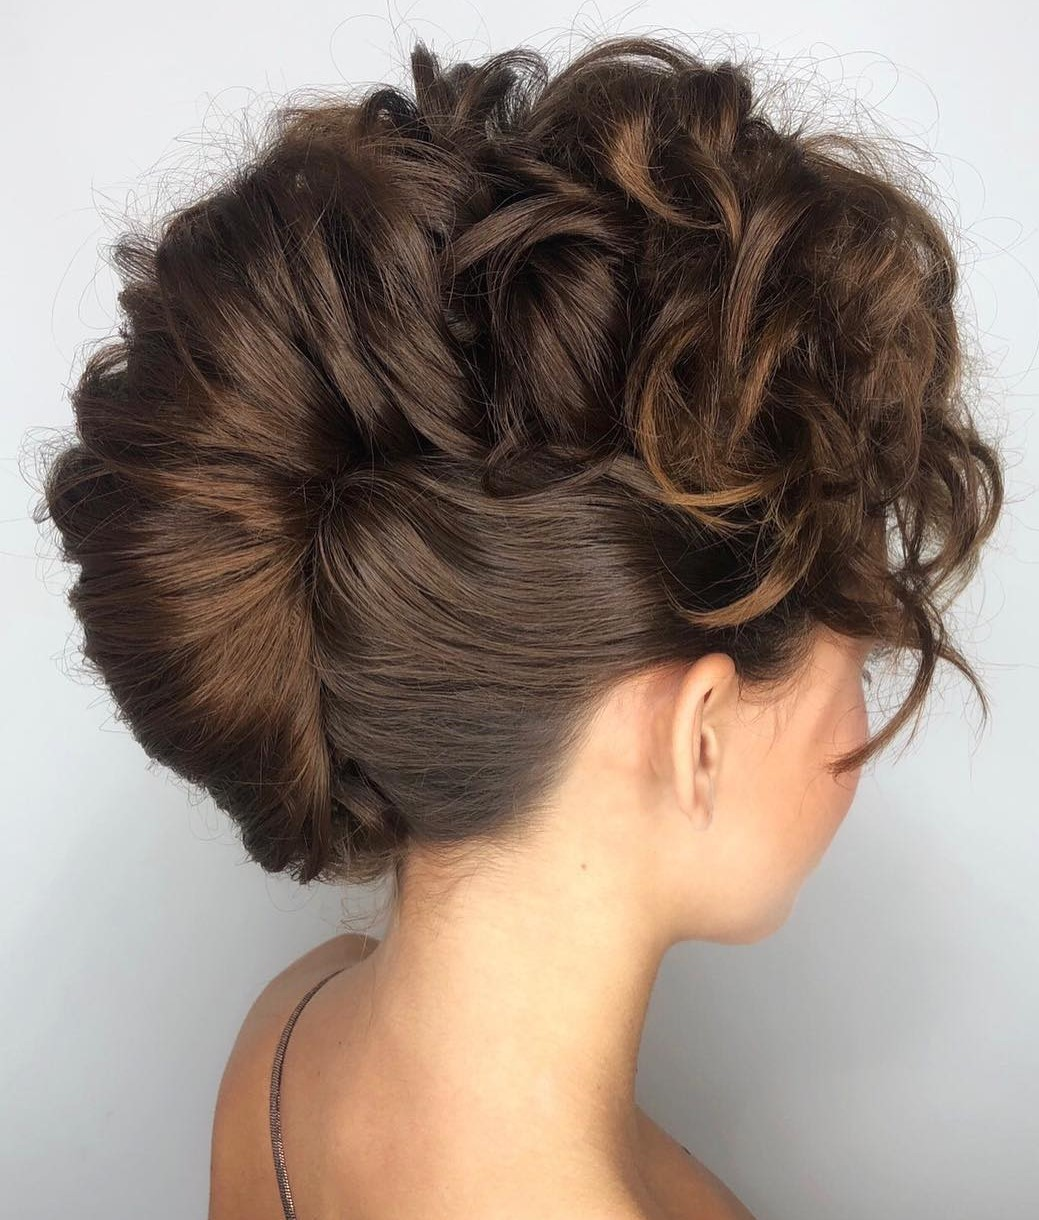 French Twist Updo with Curly Ends